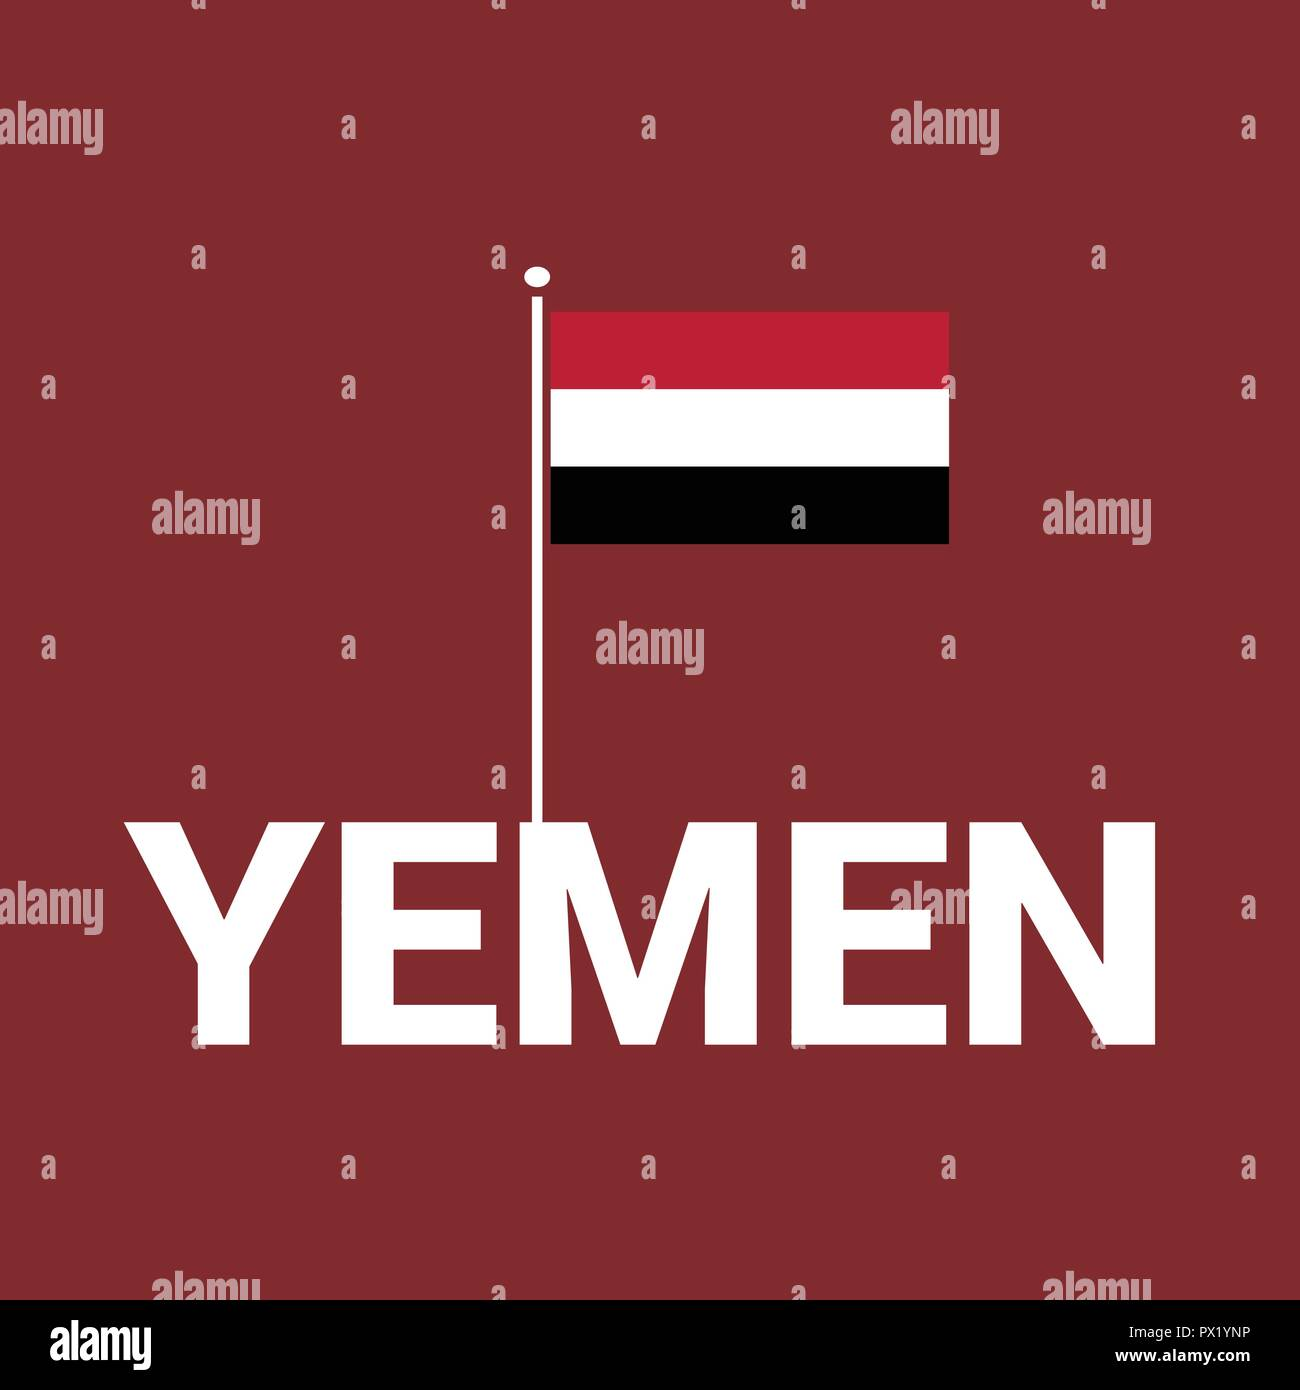 Yemen Independence day design card vector - Stock Vector